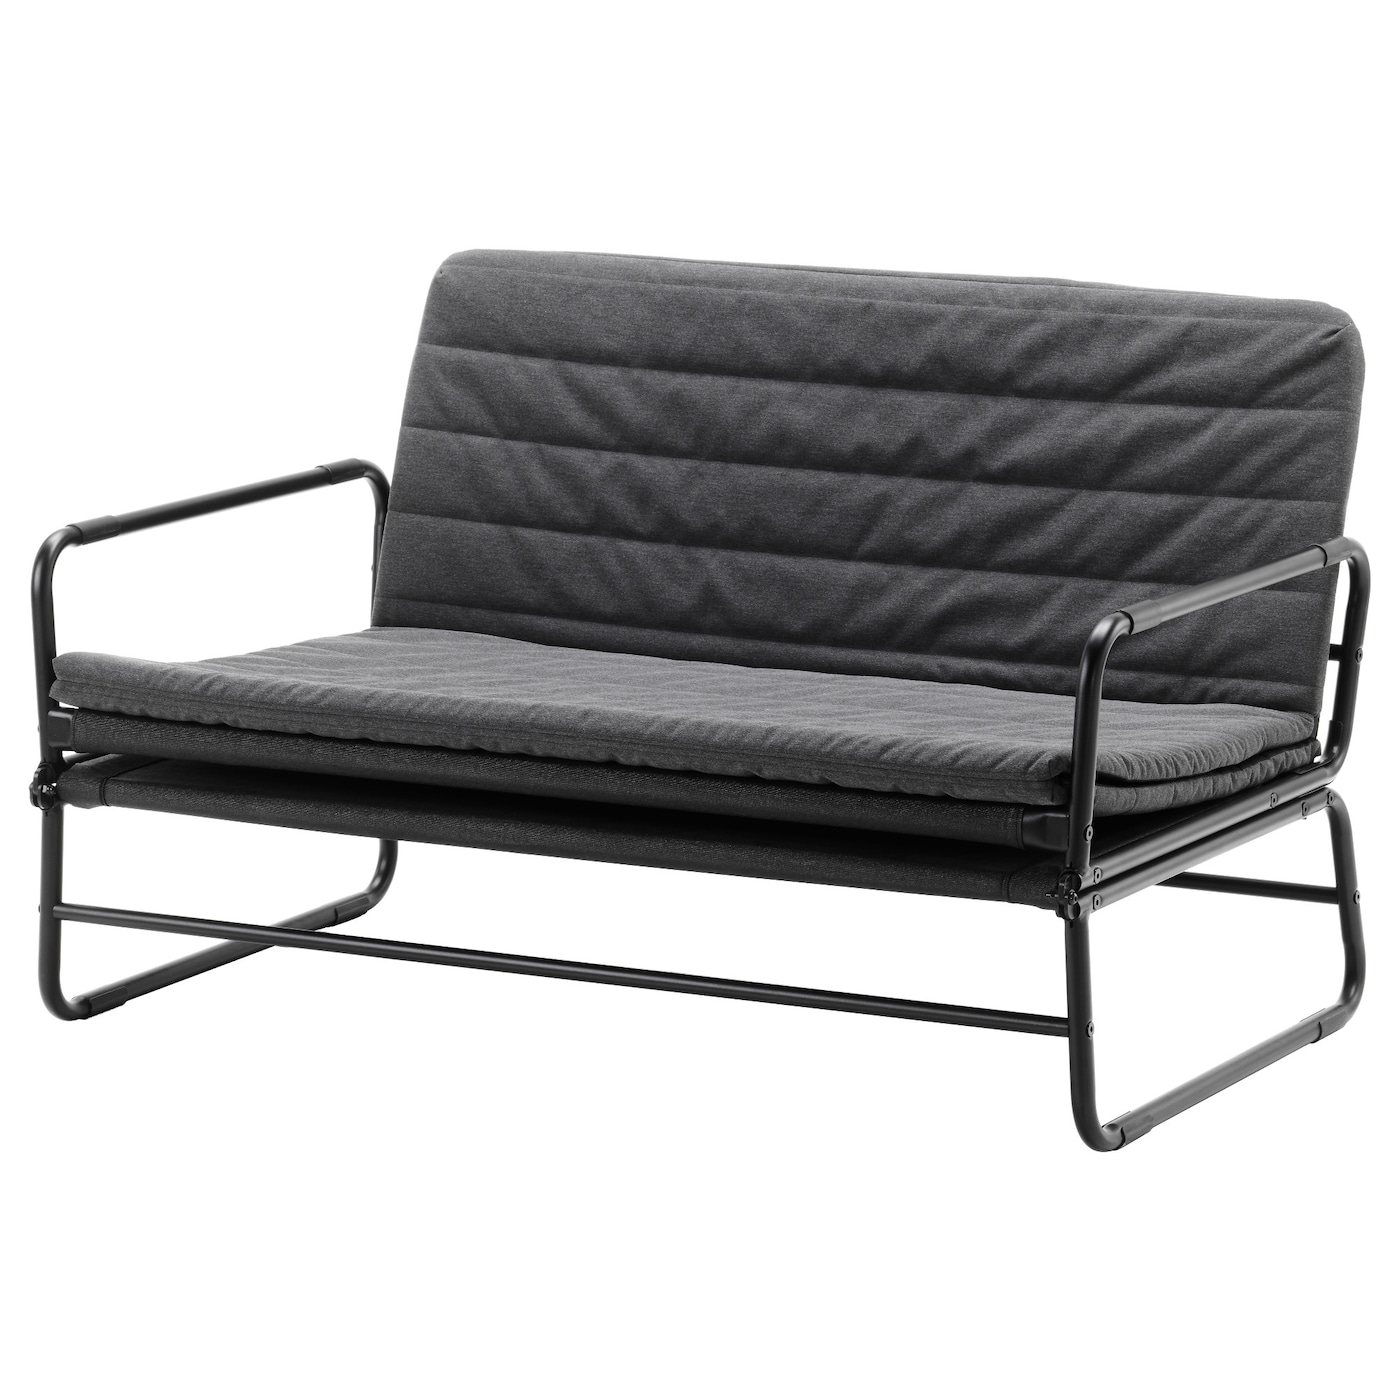 Hammarn Sofa Bed Knisa Dark Grey